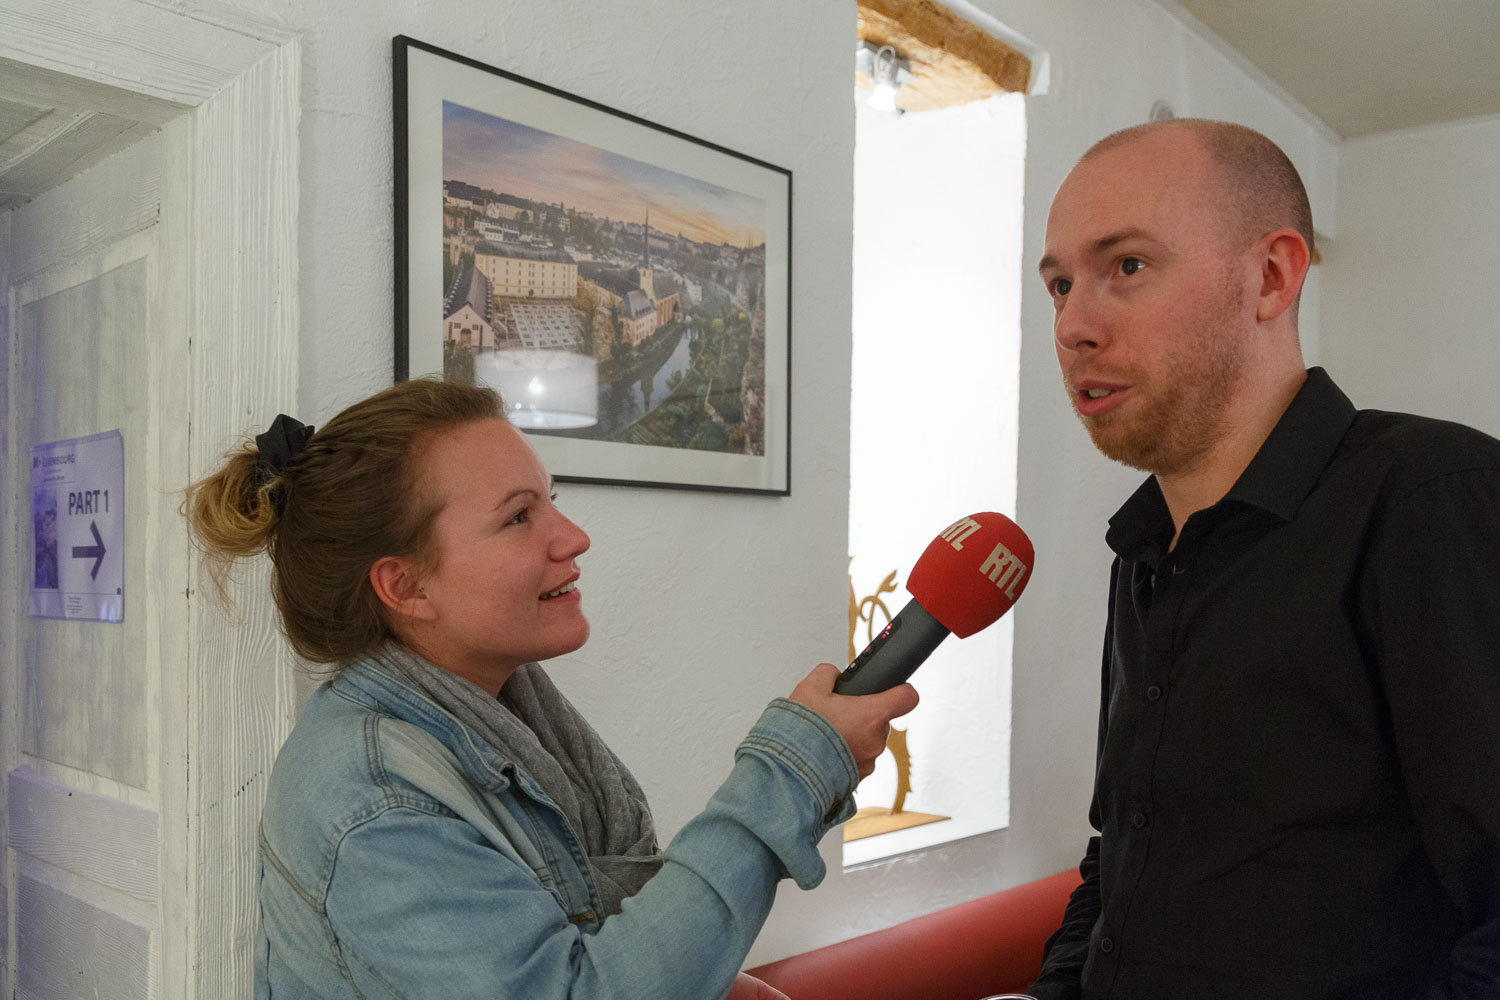 Interview with RTL Radio at the first solo exhibition by Luxembourg Landscape Photographer Christophe Van Biesen at the Brasserie Beim Siggy in Luxembourg City